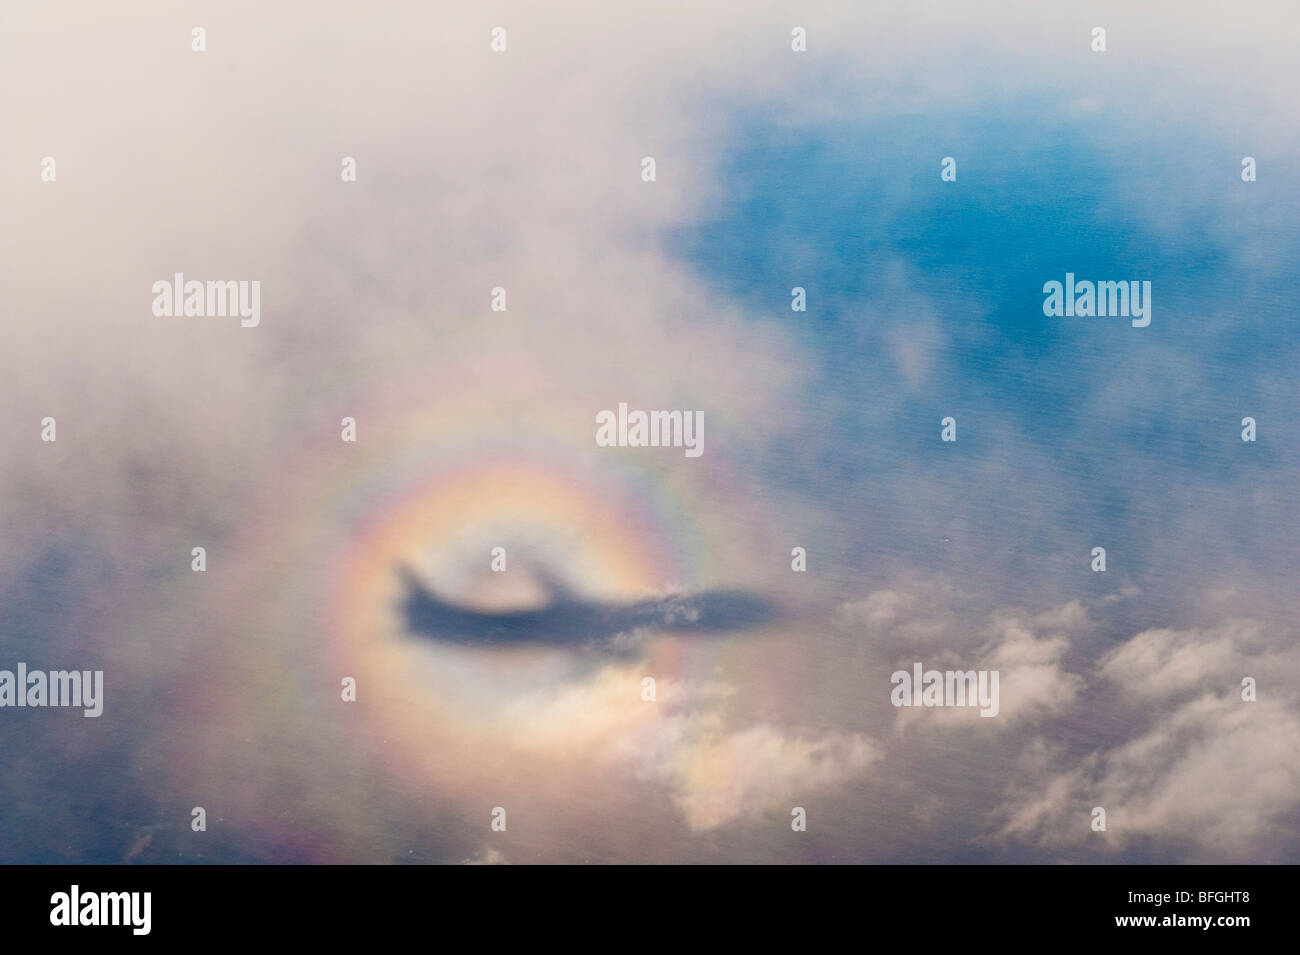 the-glory-of-the-pilot-an-optical-phenomenon-similar-to-a-rainbow-BFGHT8.jpg